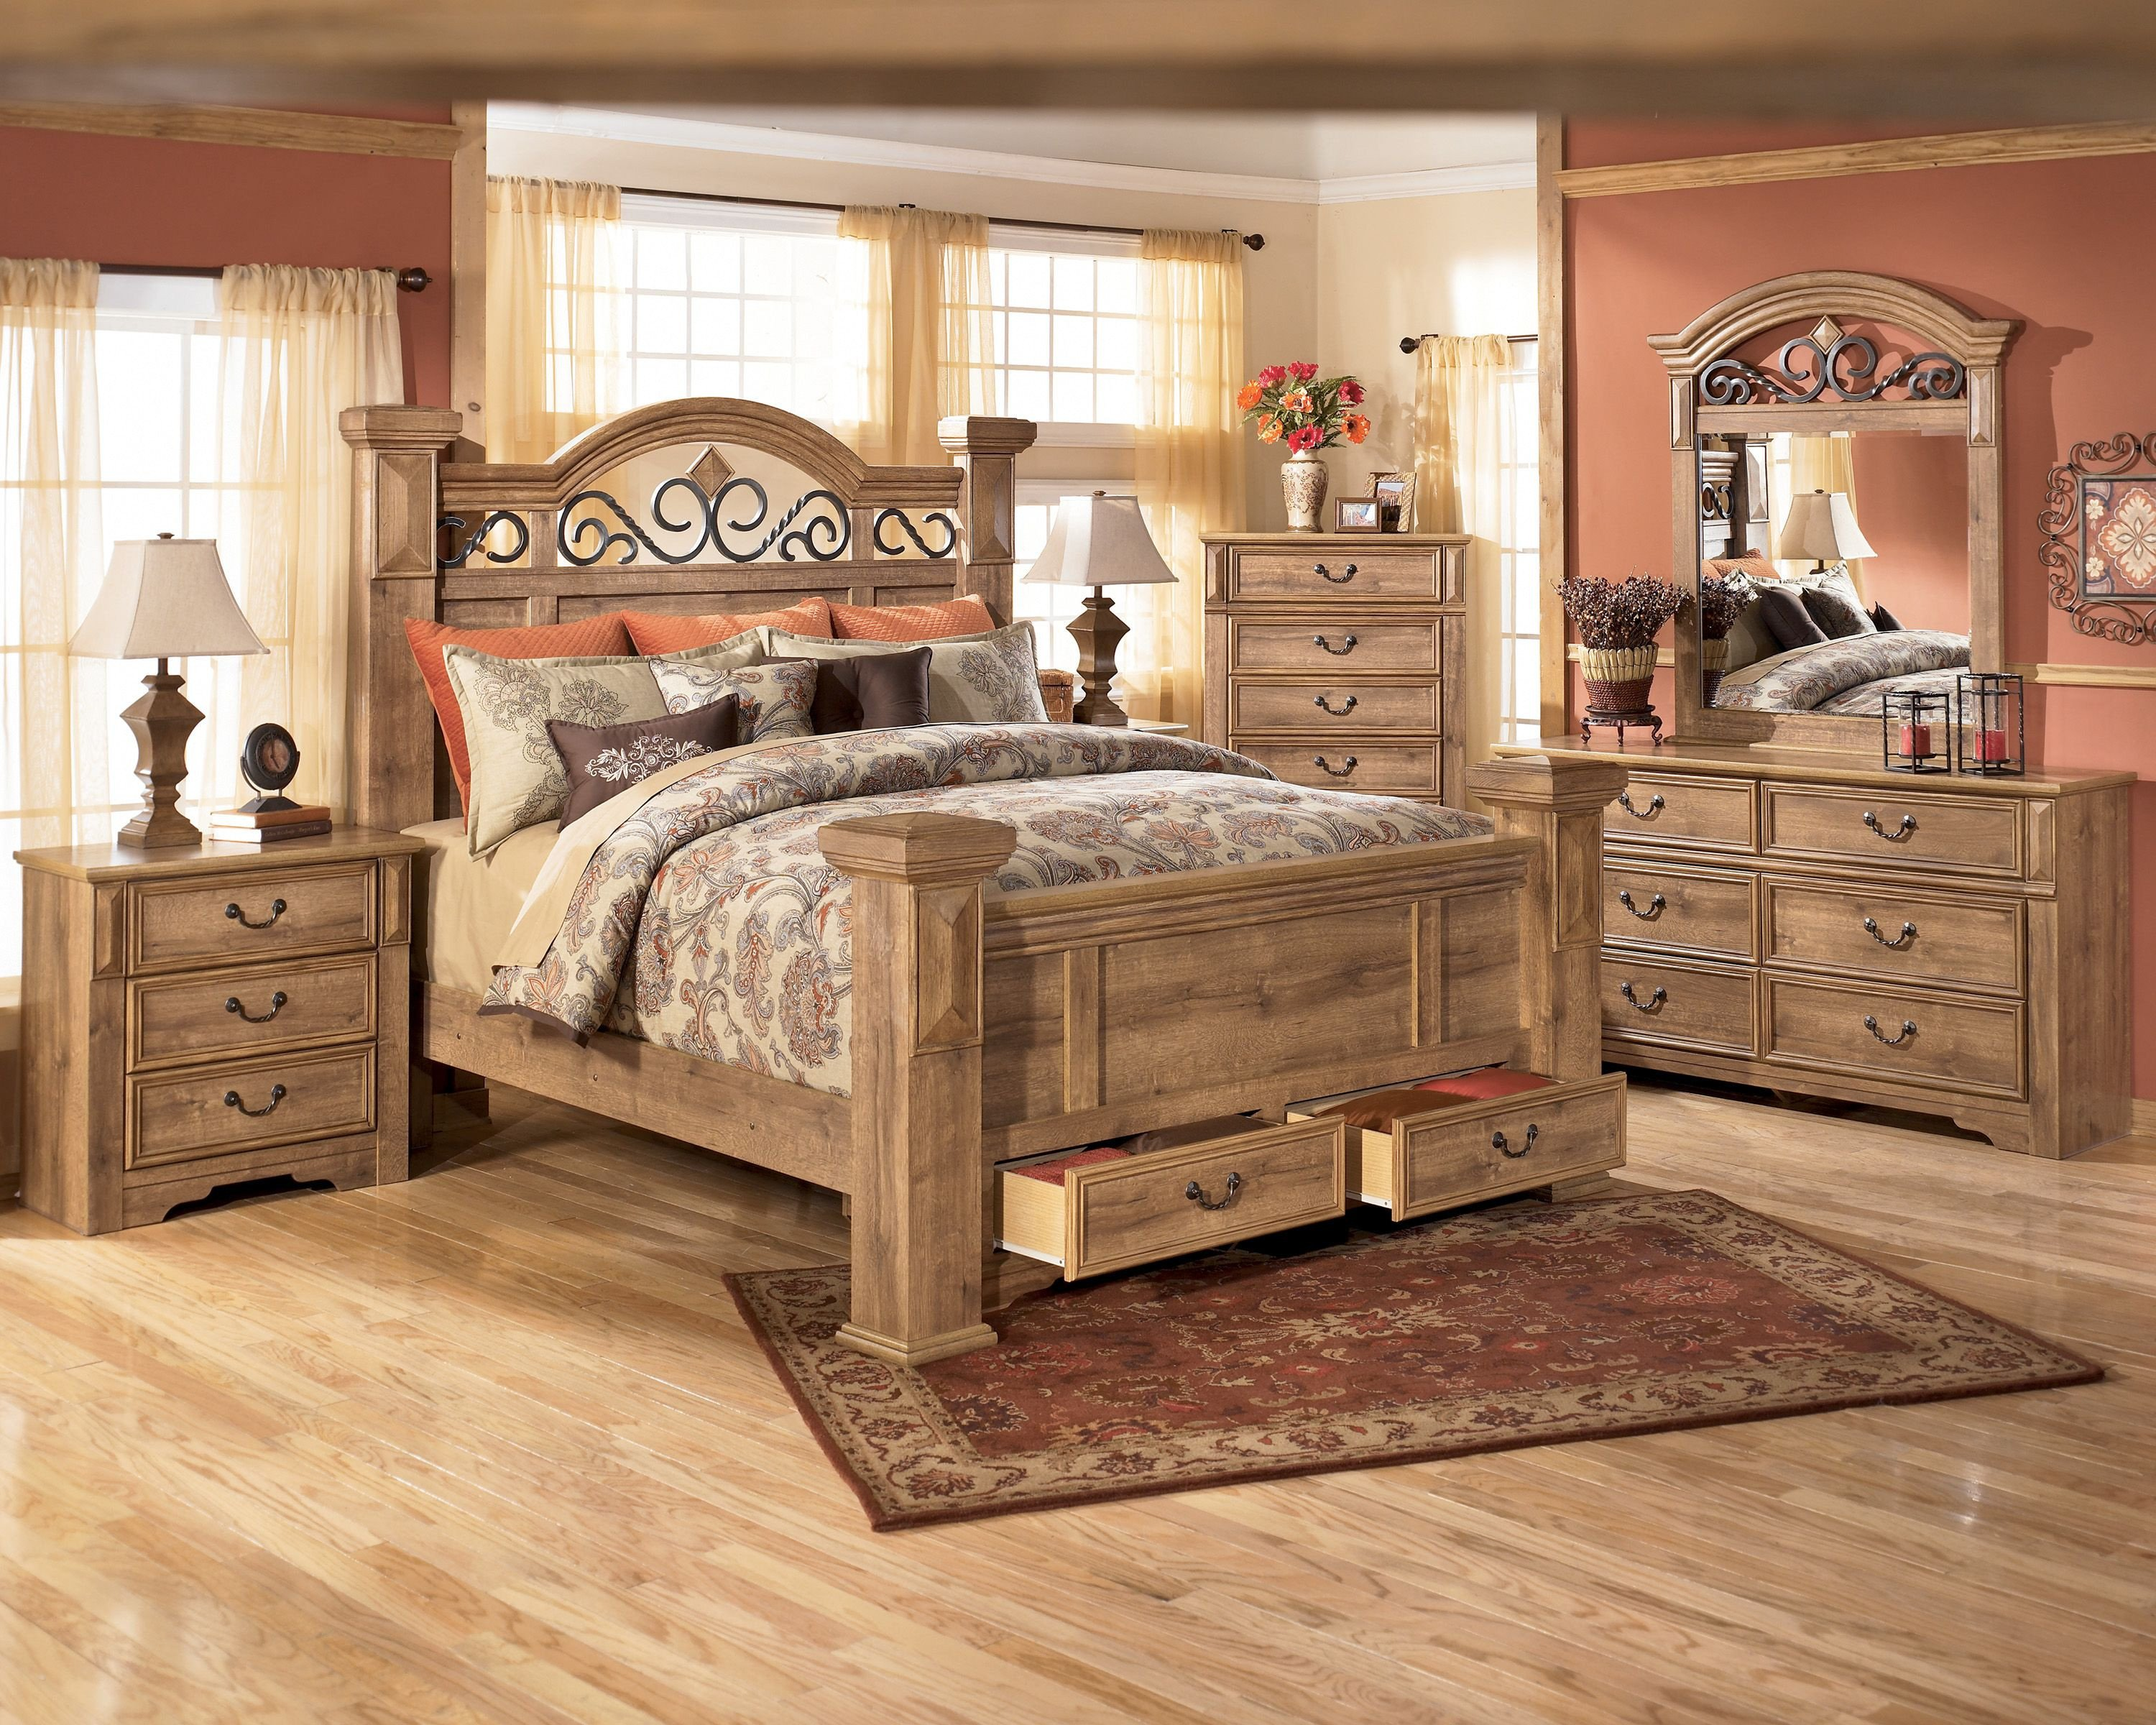 King Size Bedroom Set with Mattress Inspirational Awesome Awesome Full Size Bed Set 89 Home Decorating